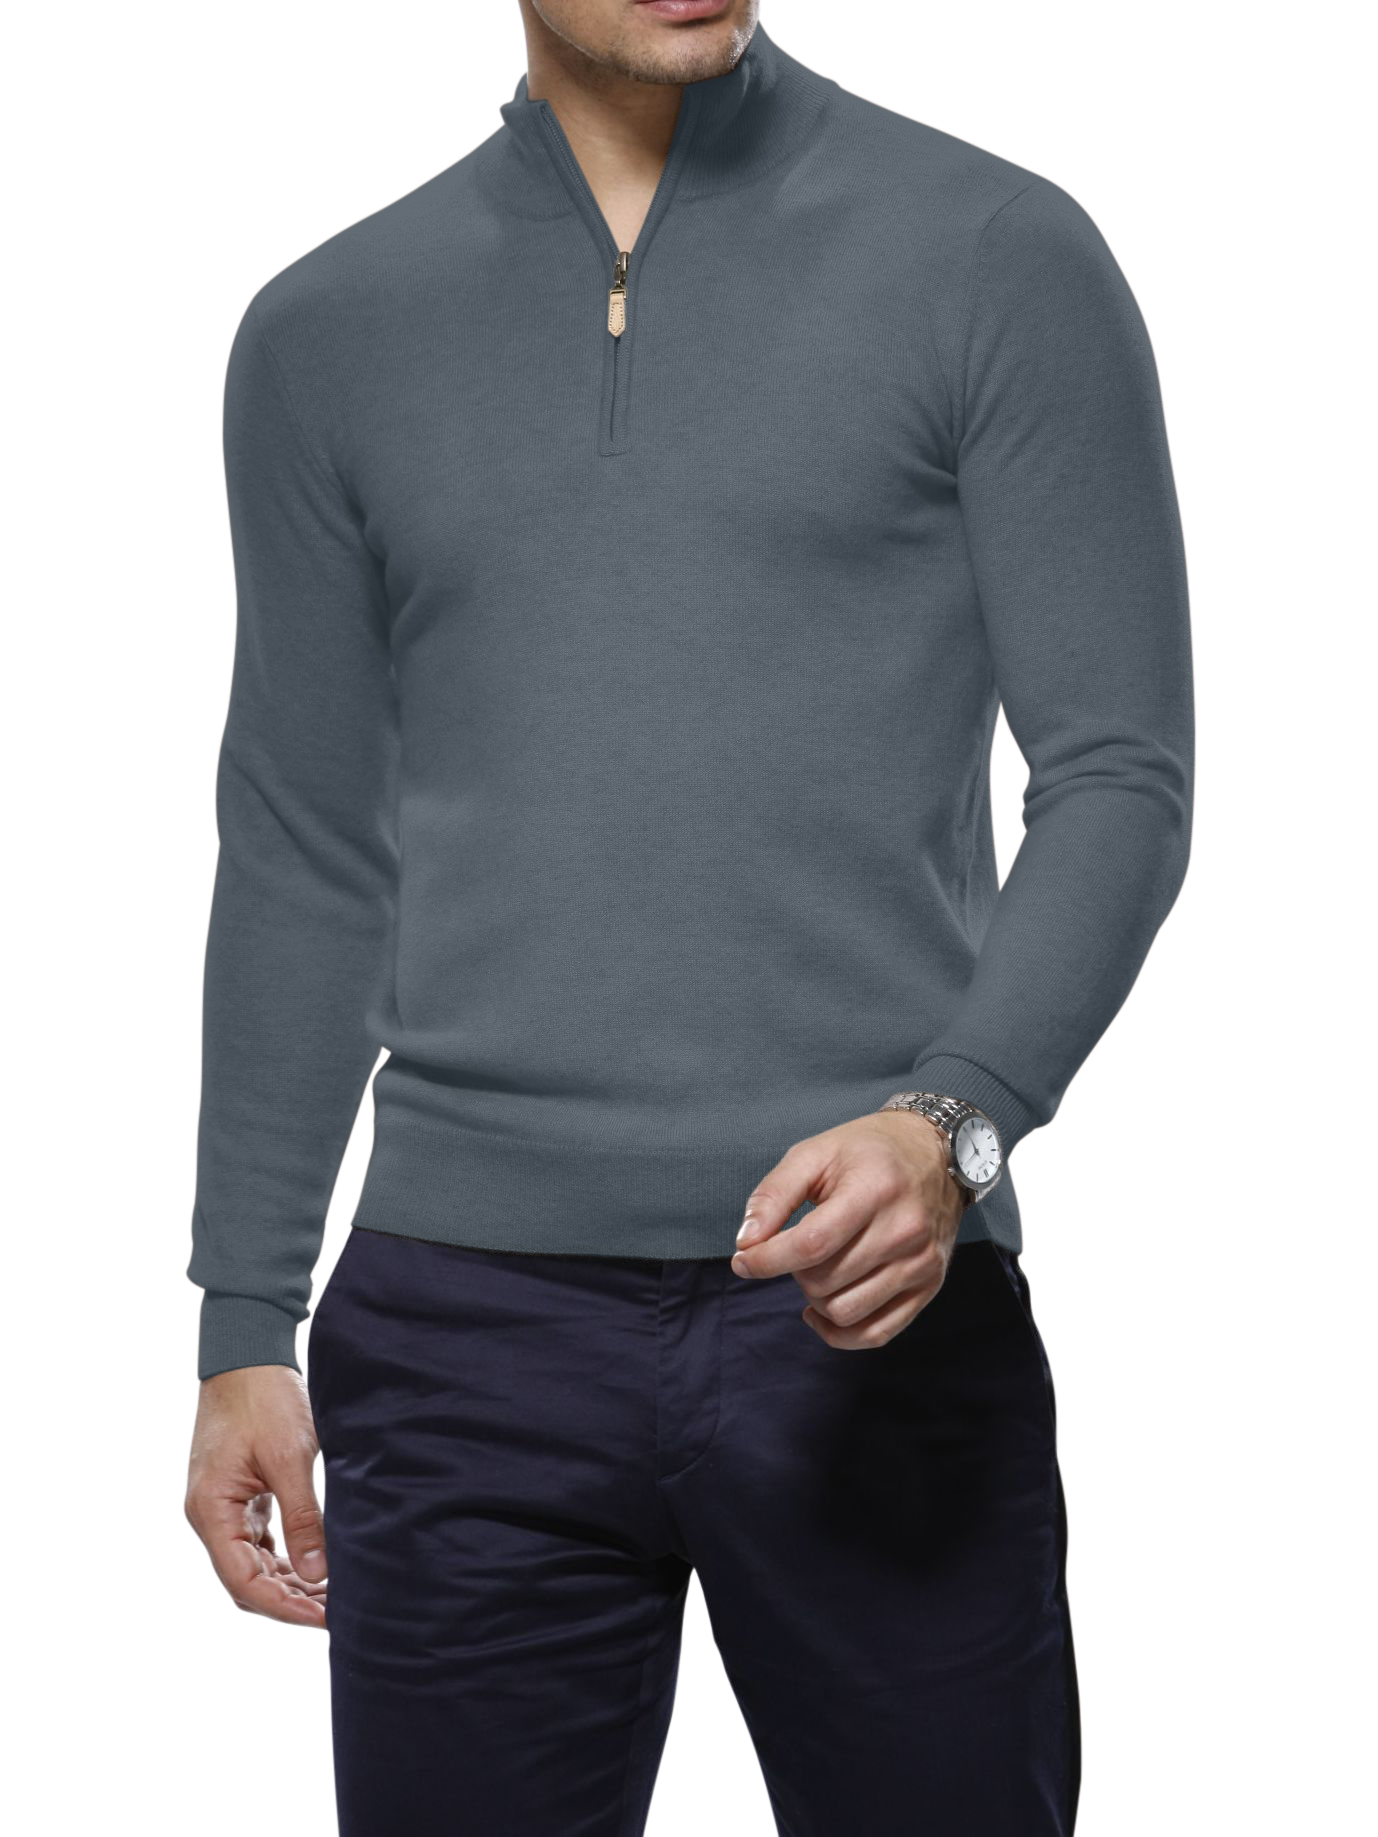 Smoke Merino Wool 1/4 Zip Mock Sweater